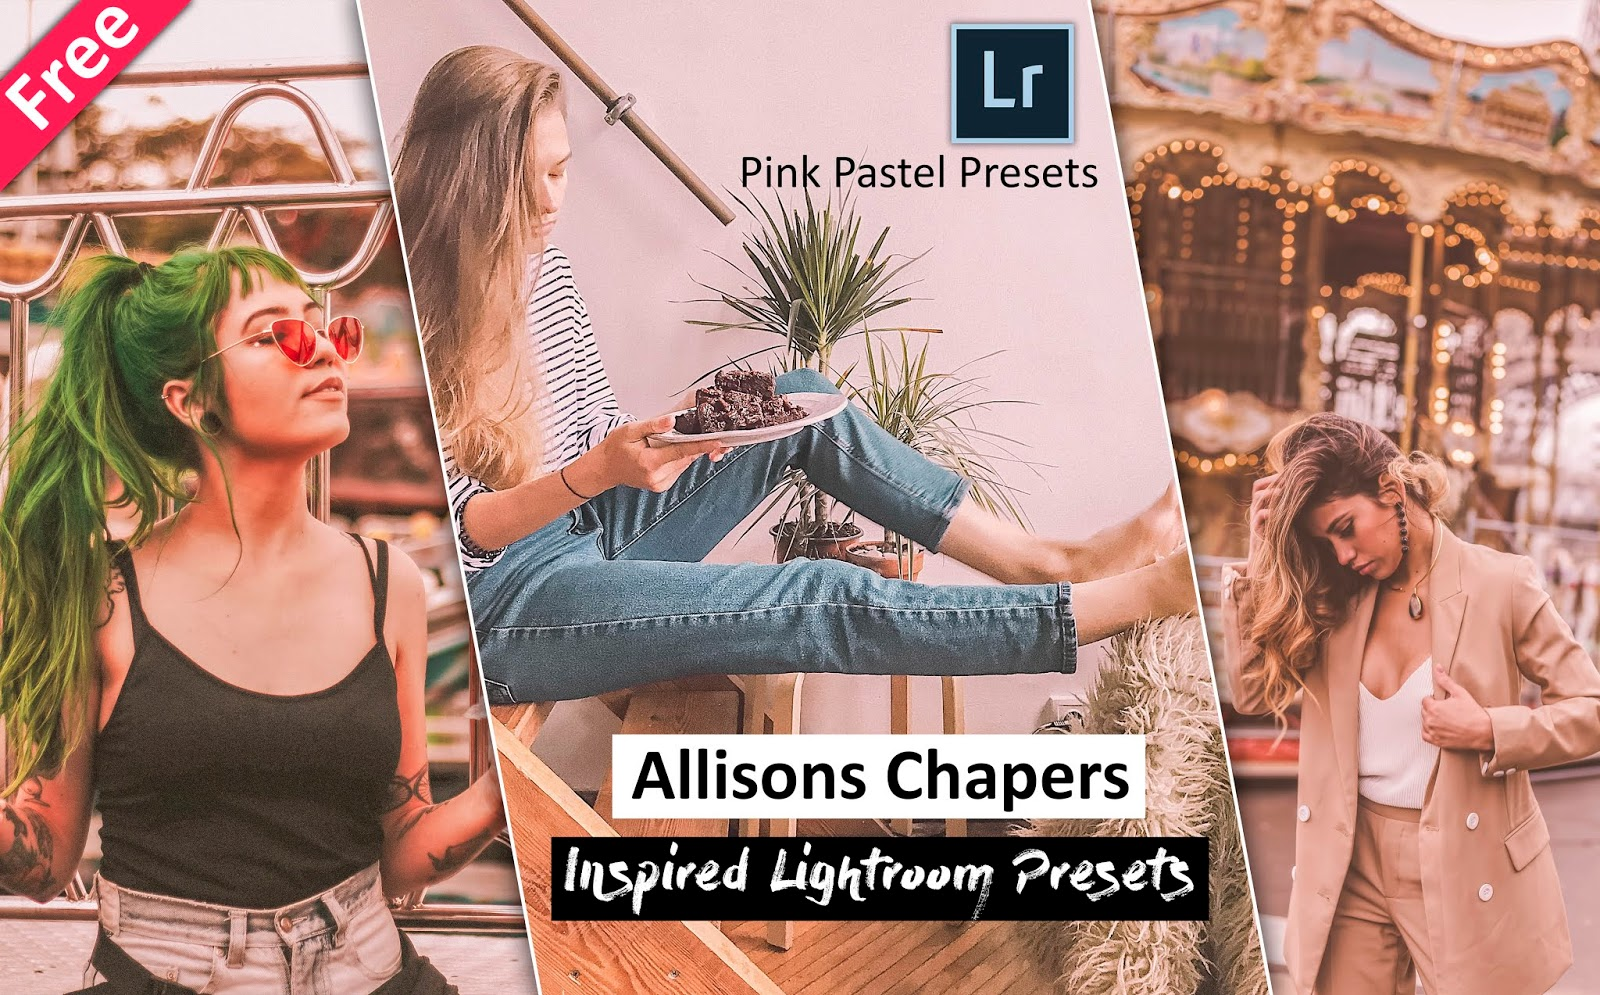 Get @allisons chaper Inspired Lightroom Presets for Free | How to Edit Like @allisons chaper in Lightroom | Pink Pastel Lightroom Preset